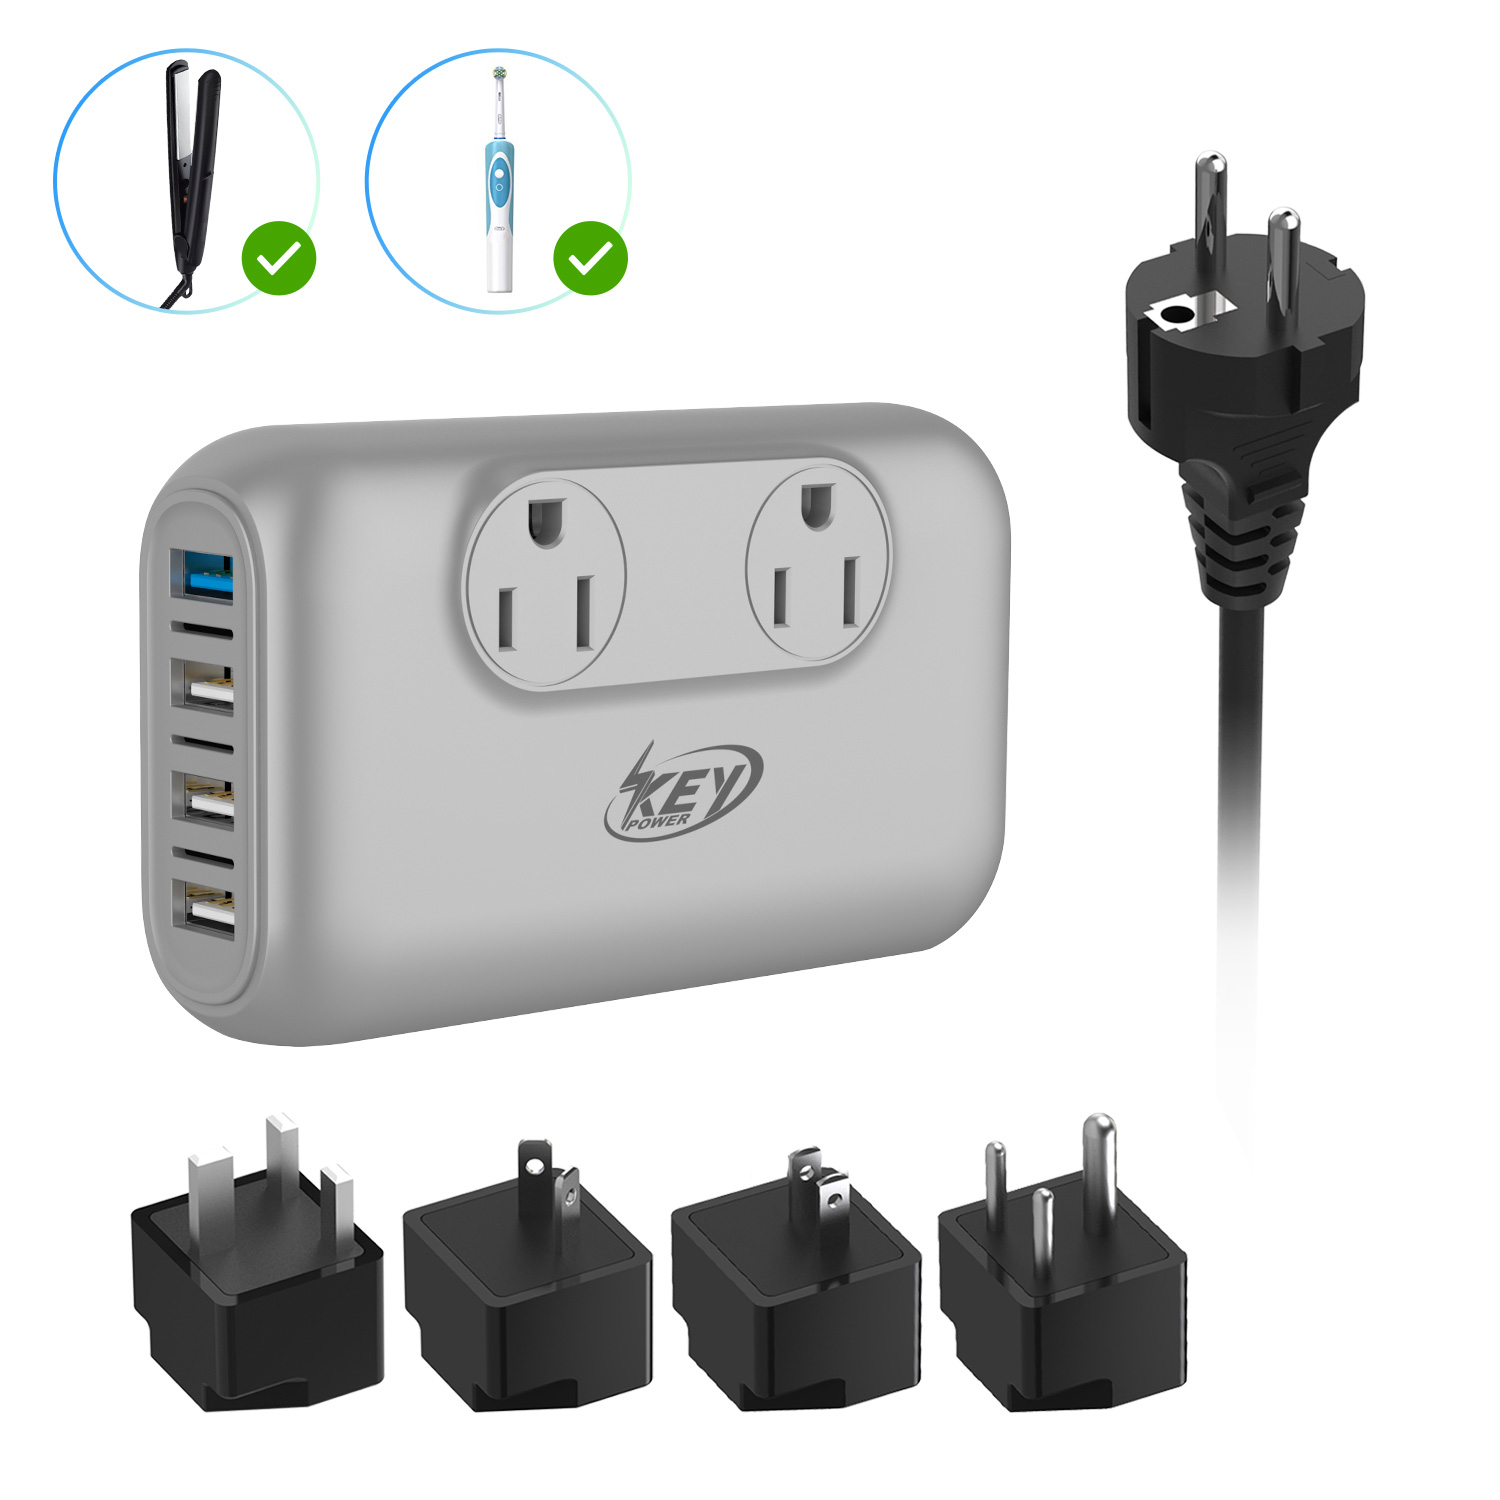 Key Power 220V to 110V Step Down Voltage Converter and International Travel Adapter, for Hair Straightener Flat Iron, Hair Curler, CPAP, Toothbrush - [Safely Use USA Electronics Overseas]